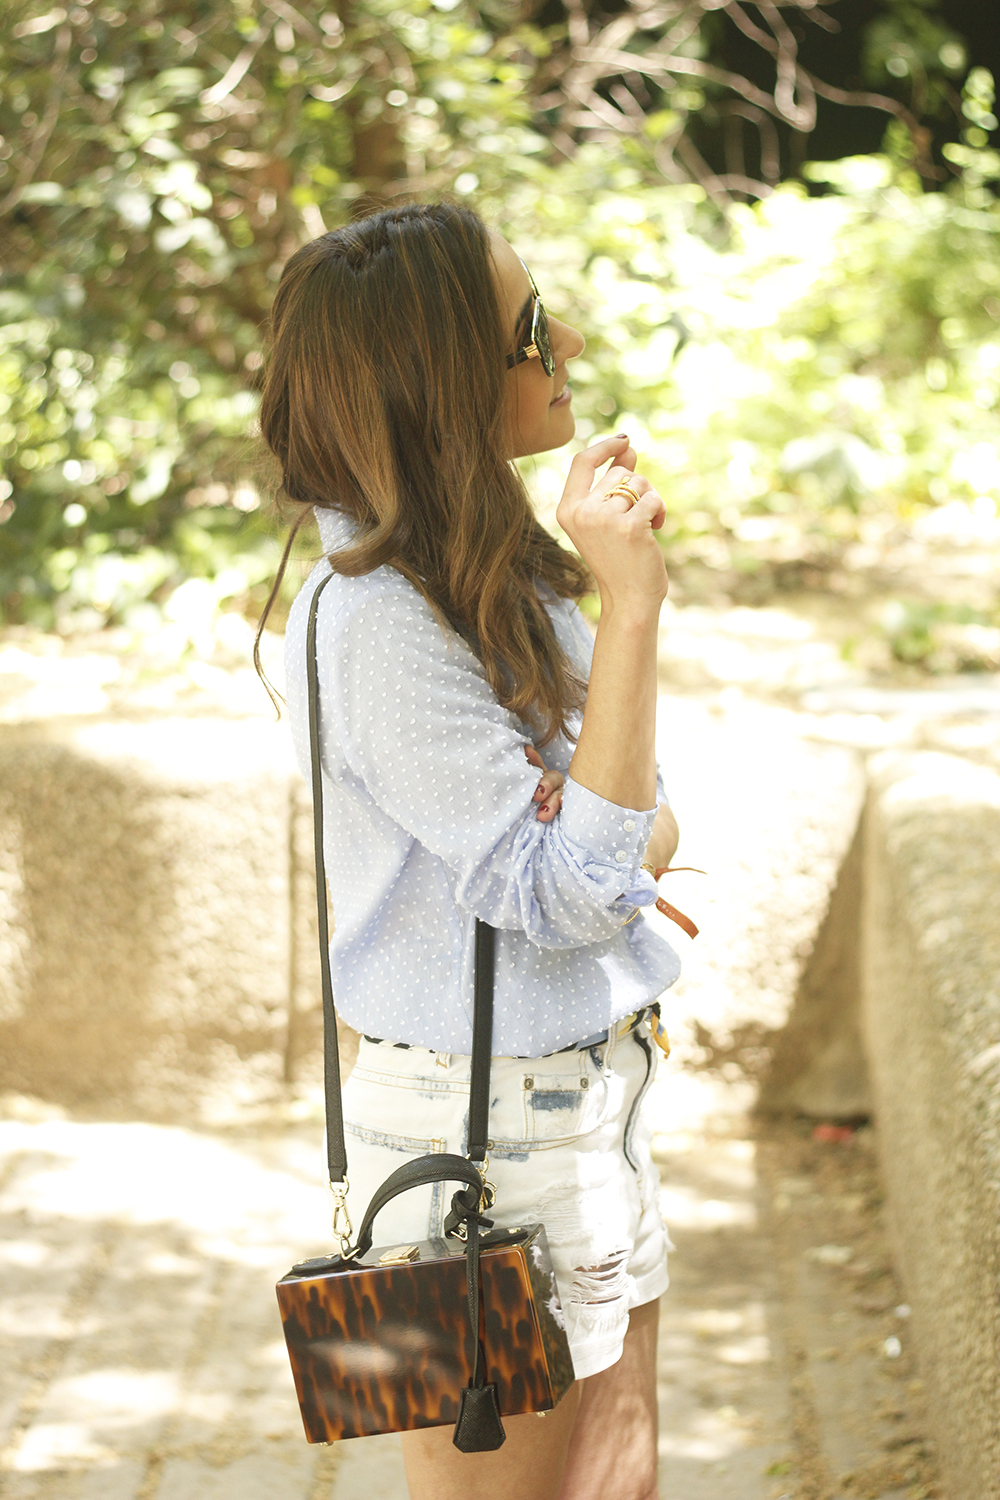 Denim Shorts Carey Bag uterqüe shirt with dots sunnies outfit style fashion03